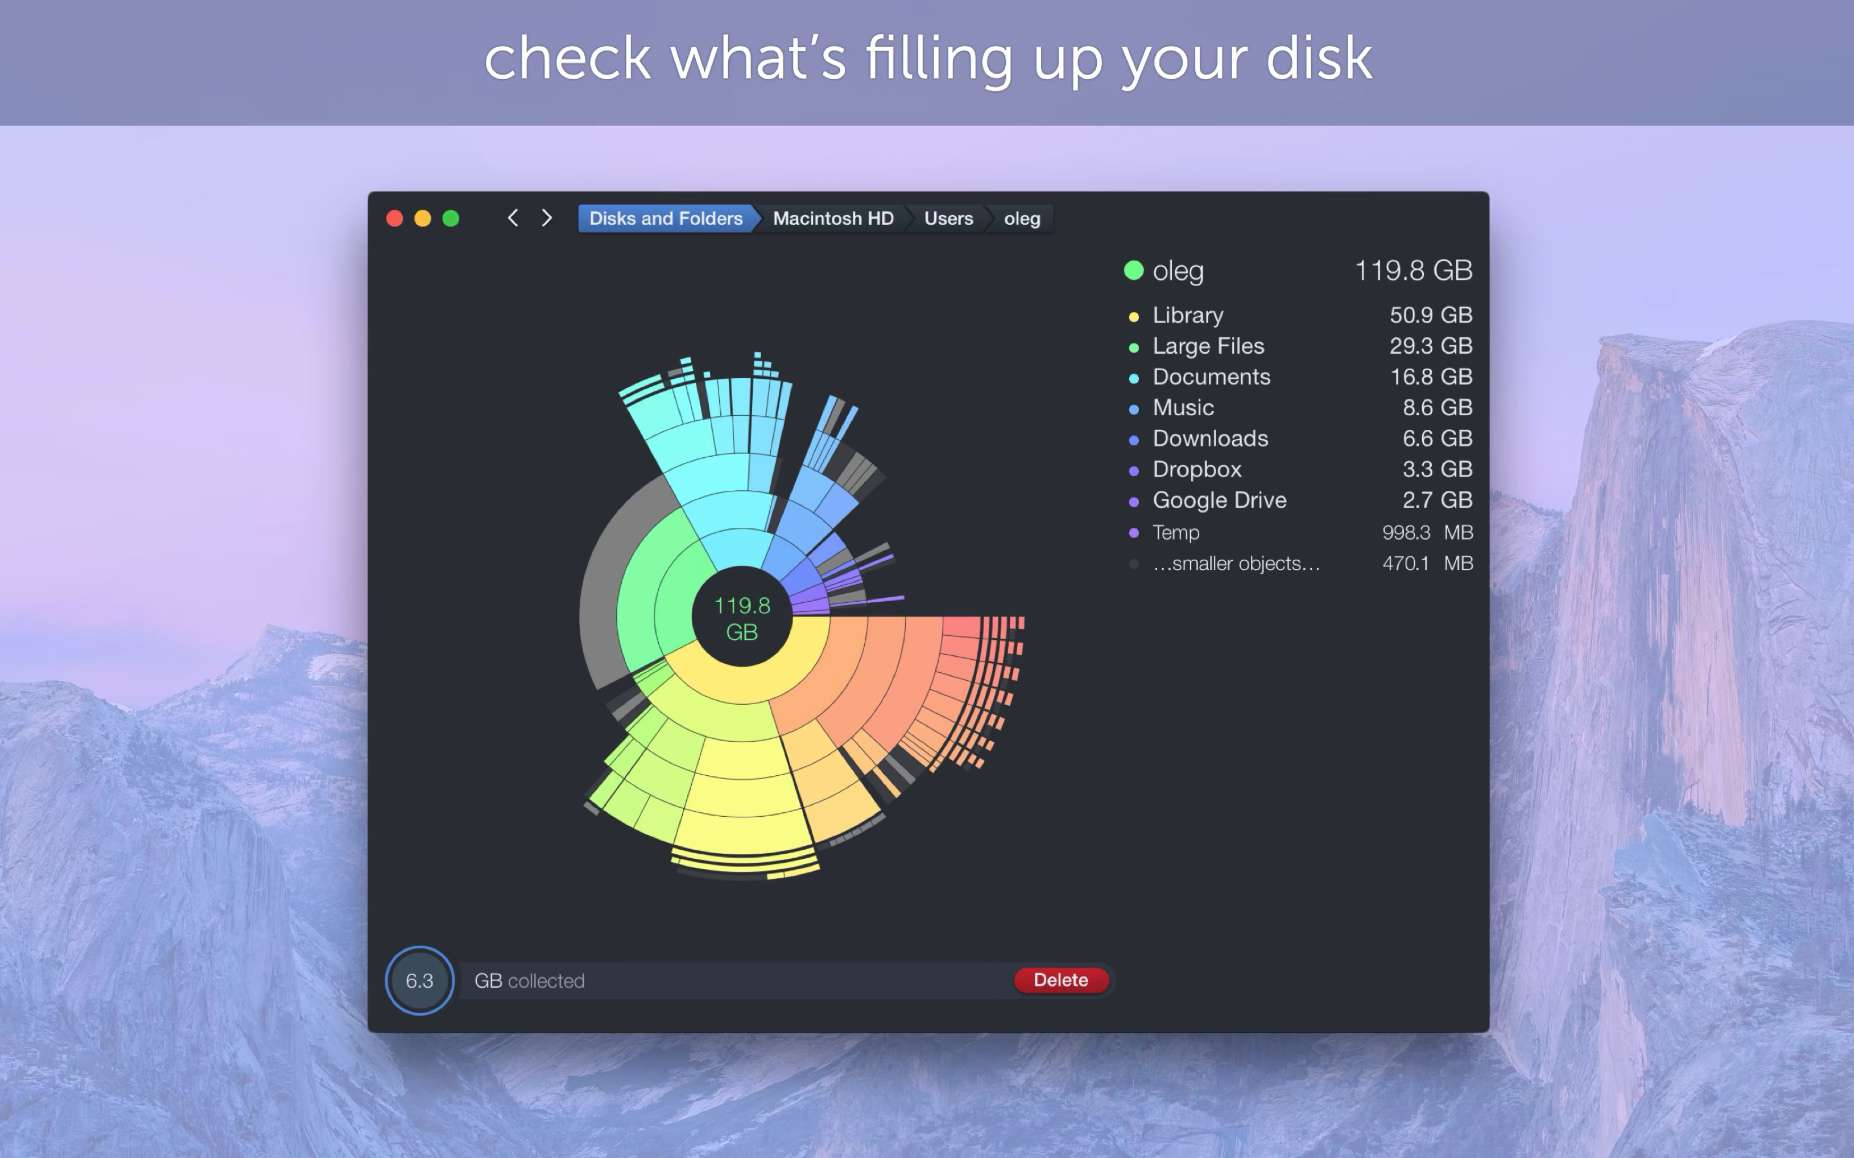 DaisyDisk app for macOS